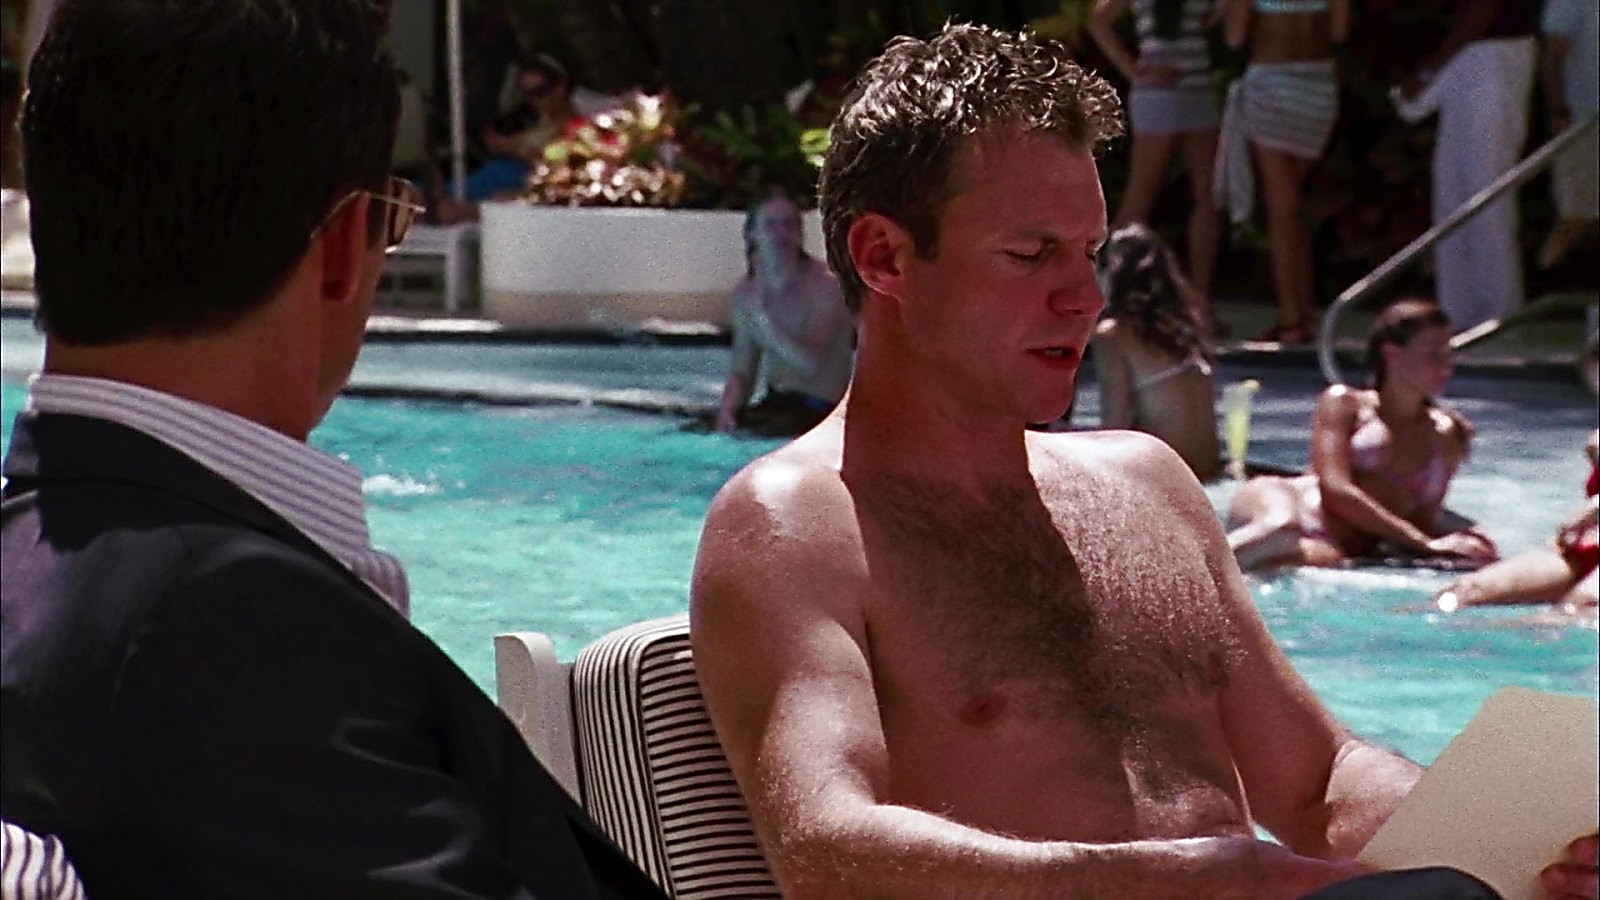 Chris Vance sexy shirtless scene April 13, 2020, 12pm